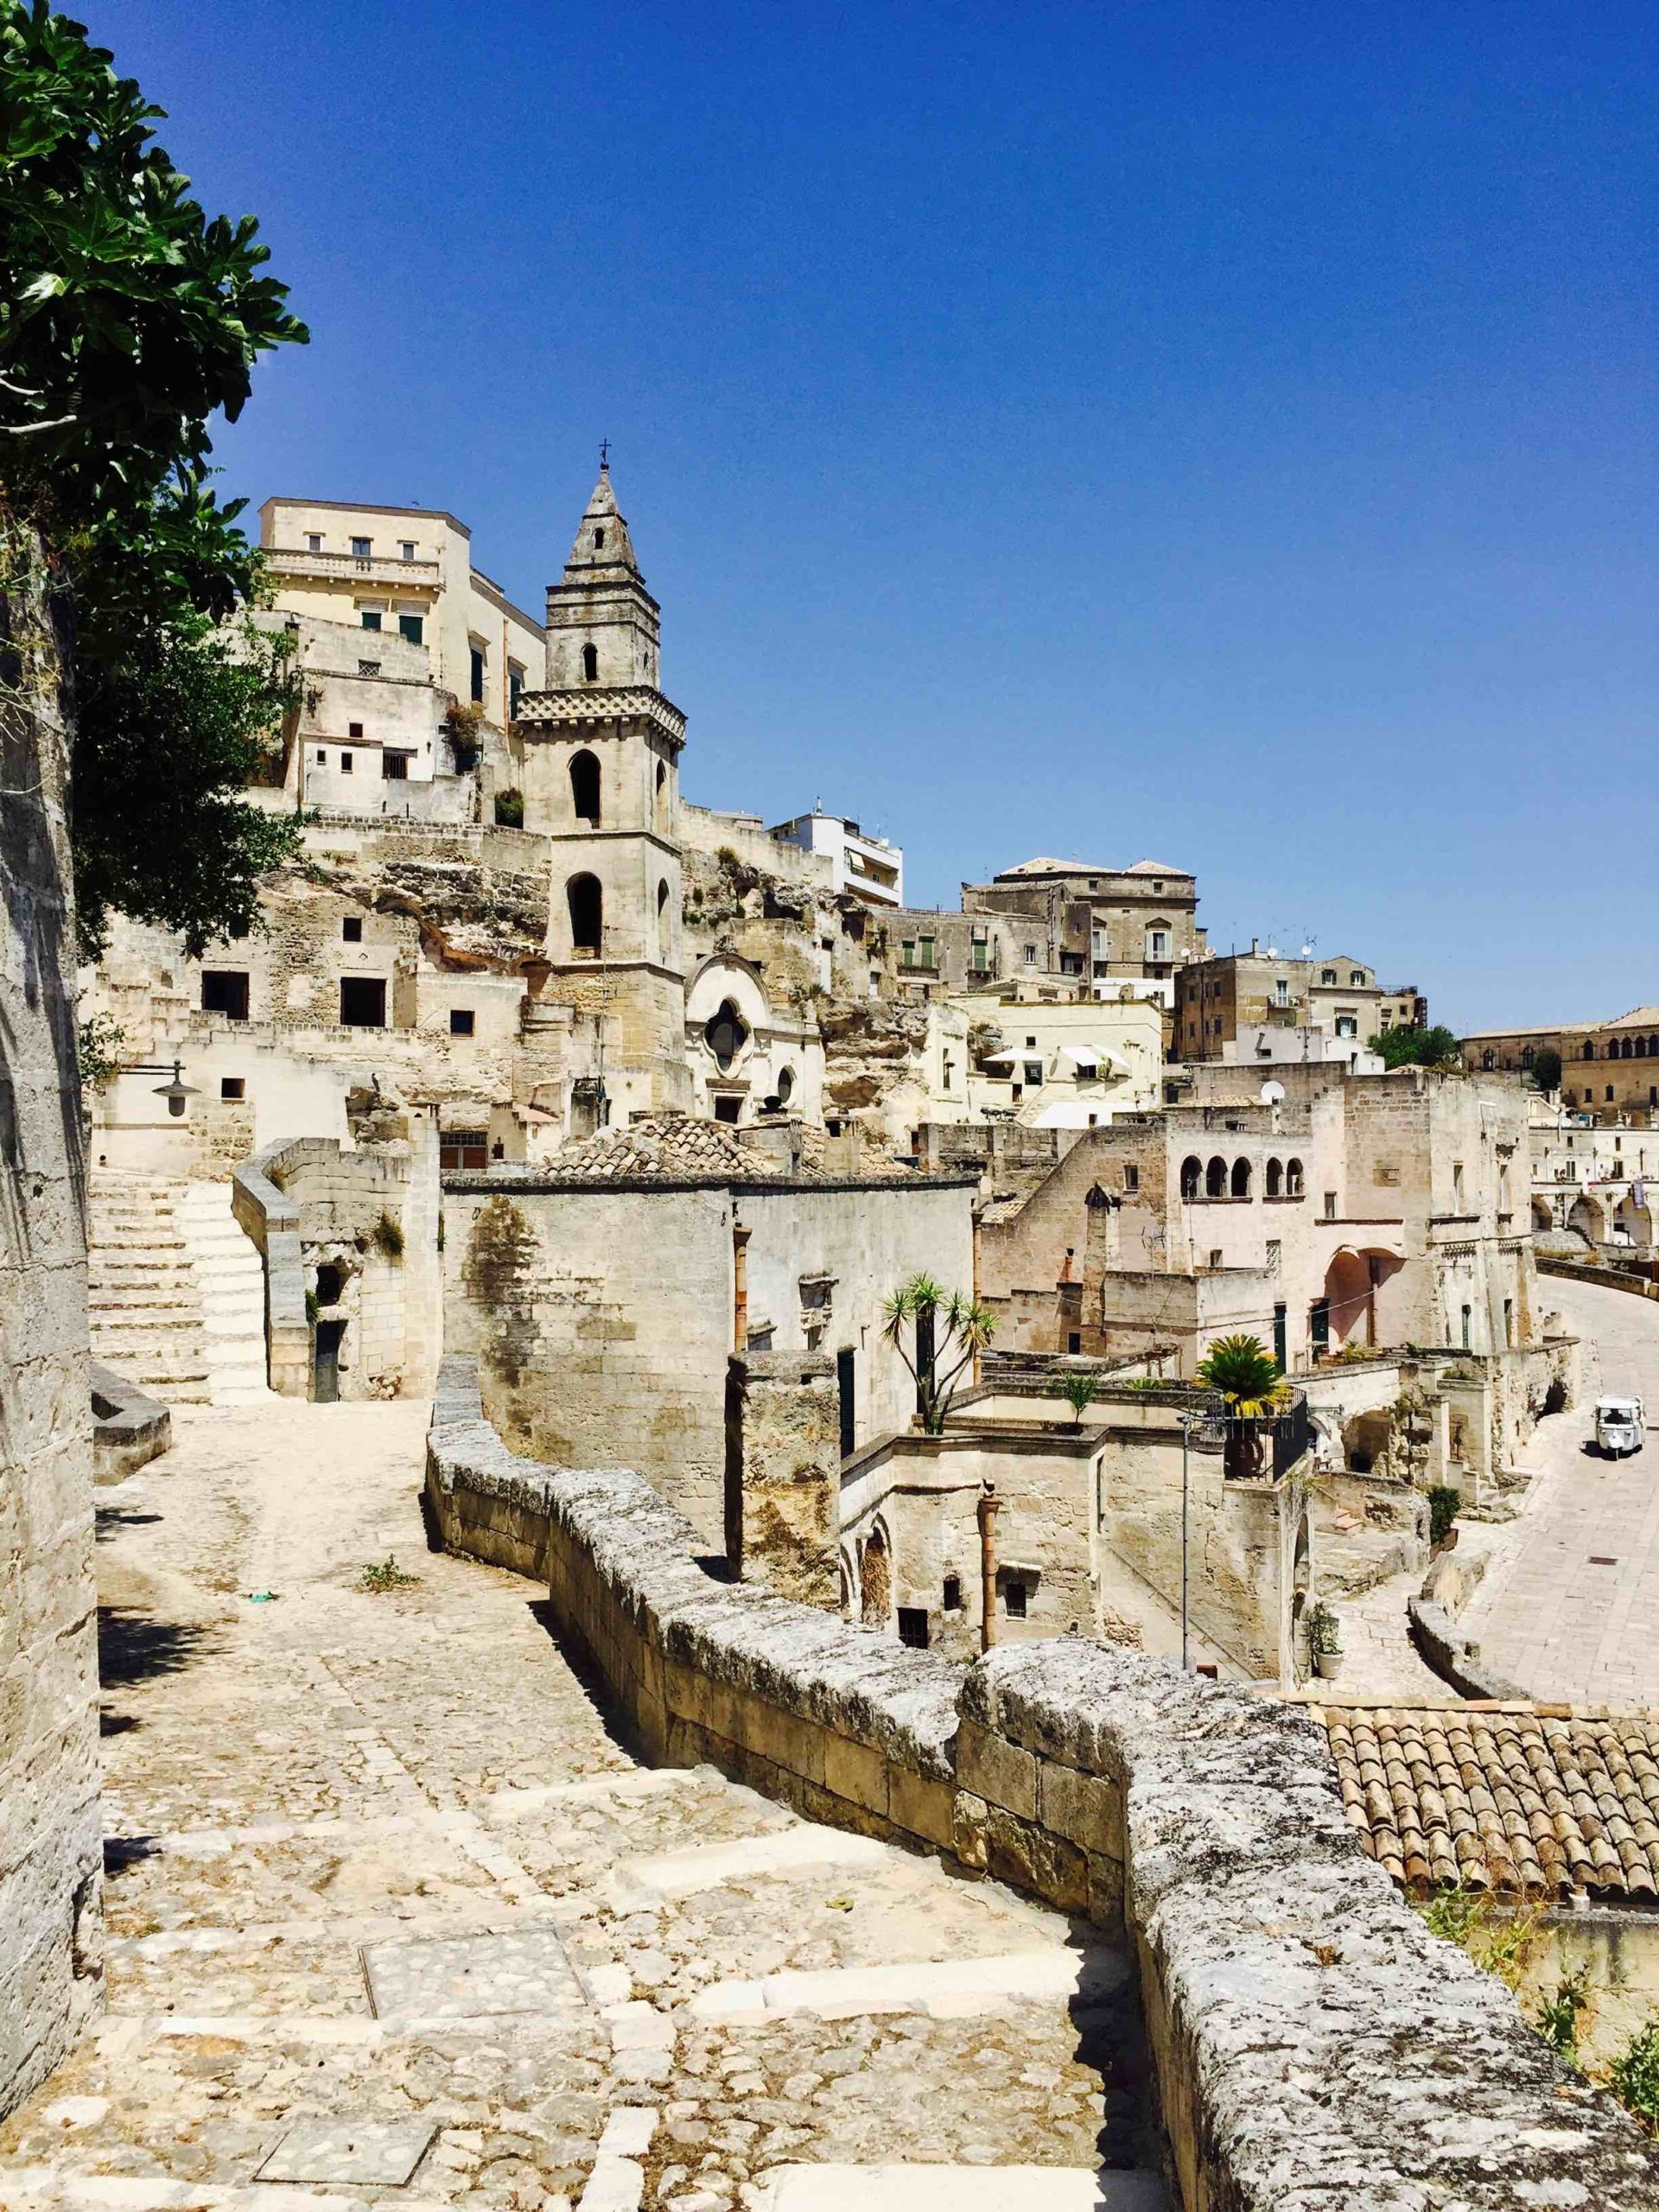 A view of Matera, the beautiful cave town in Basilicata